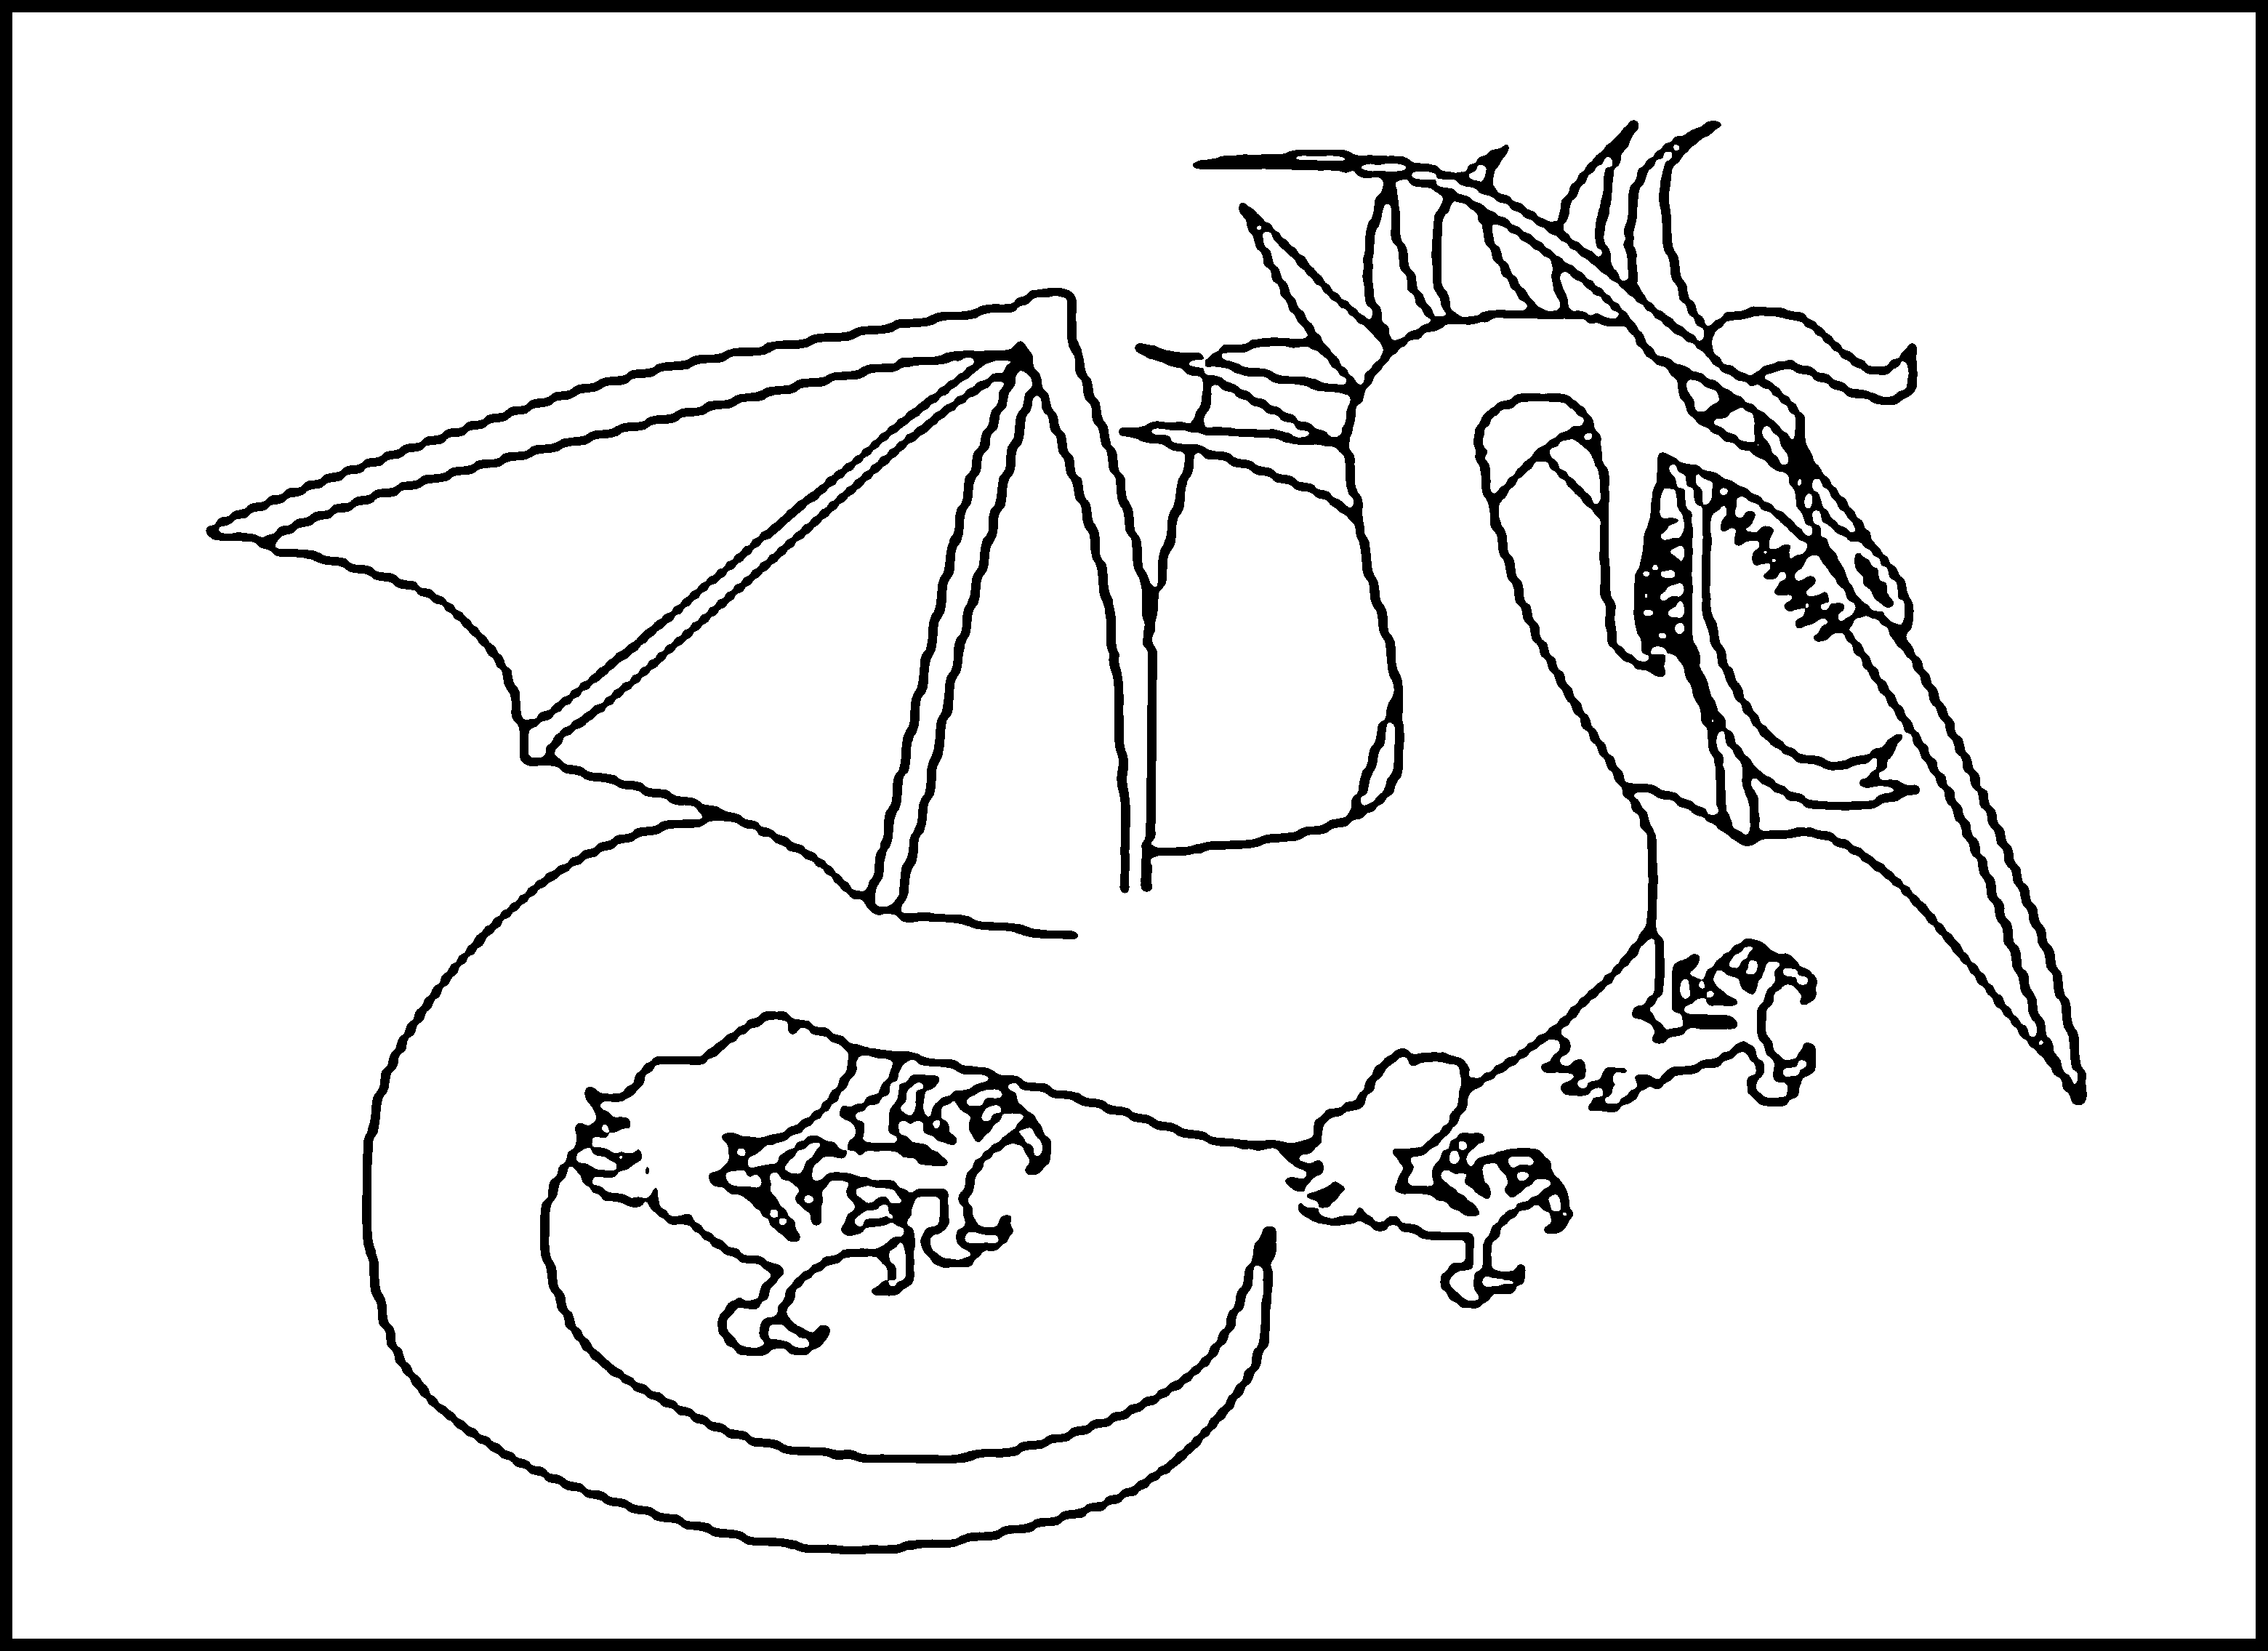 free printable dragon coloring pages for kids - Pictures To Print For Free